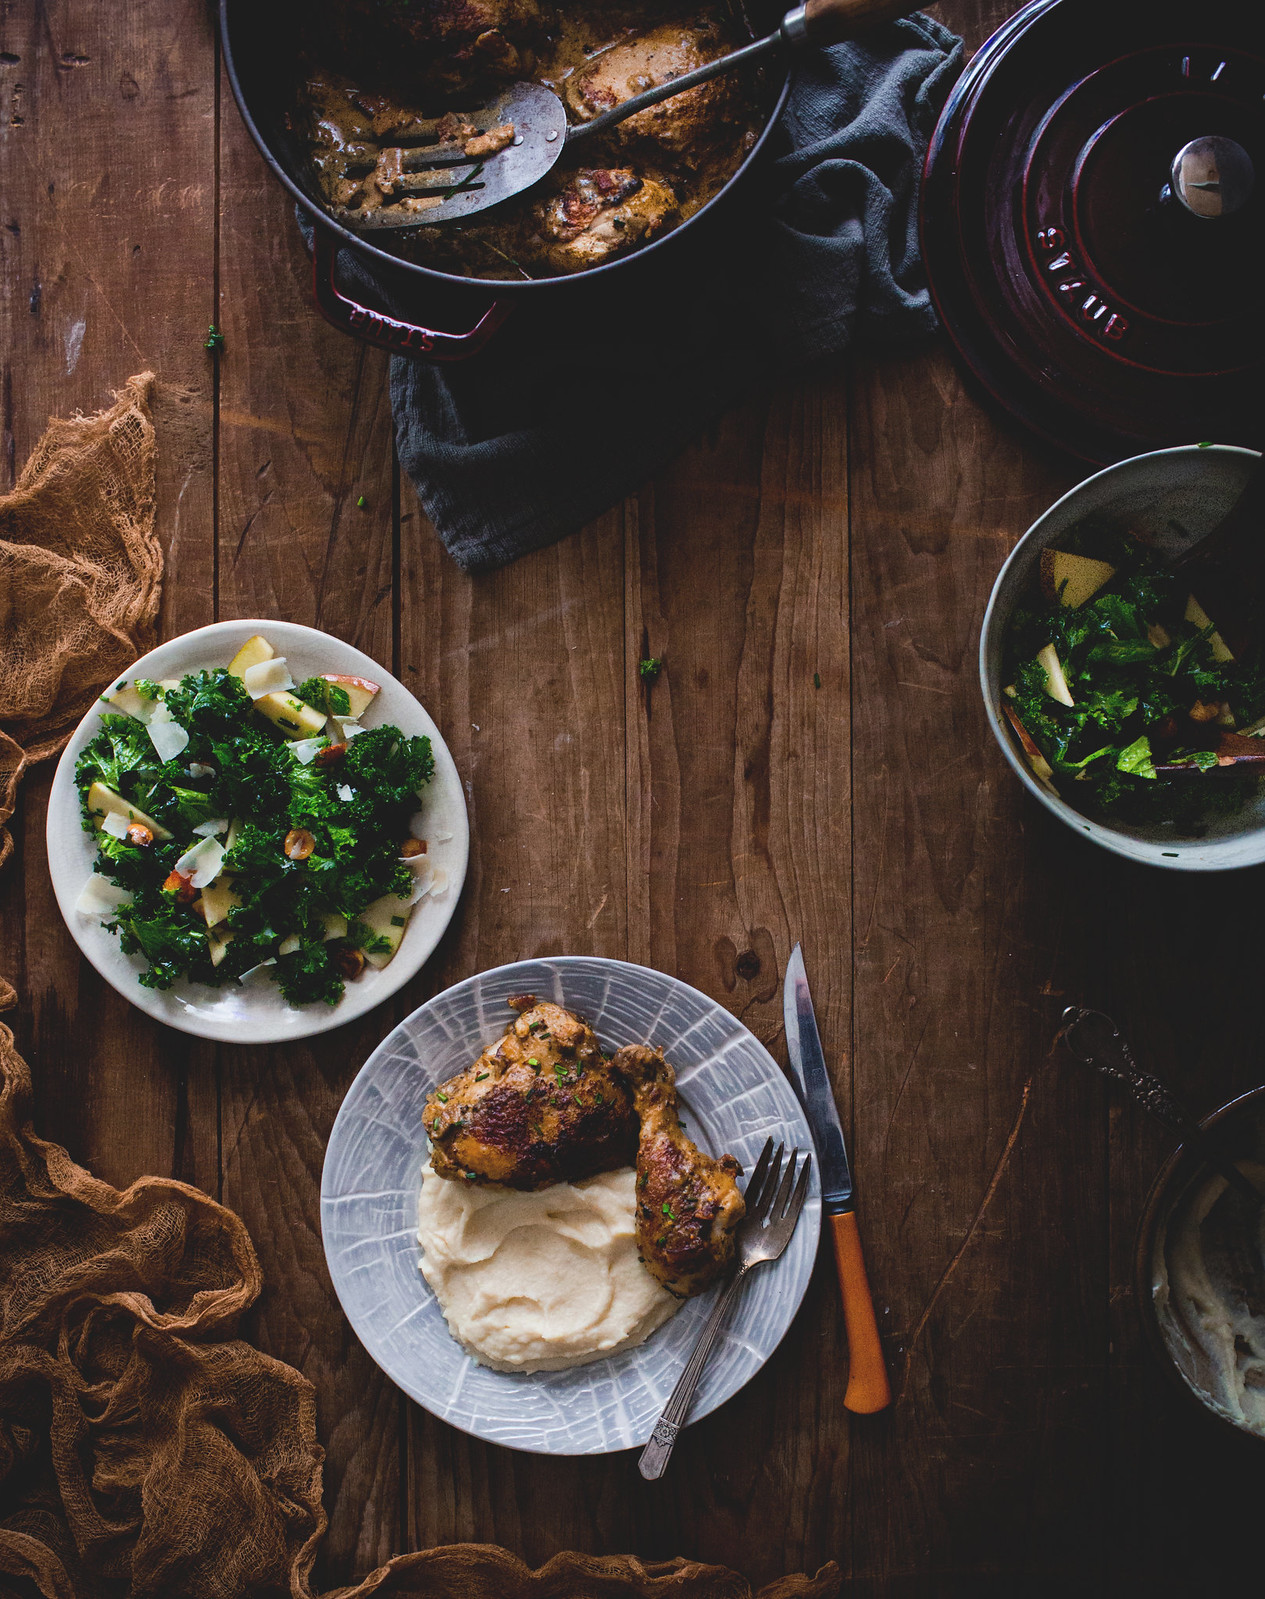 Mustard Chicken with Celery Root Pureé and Kale, Apple, & Candied Hazelnut Salad + A Cape Cod Workshop!